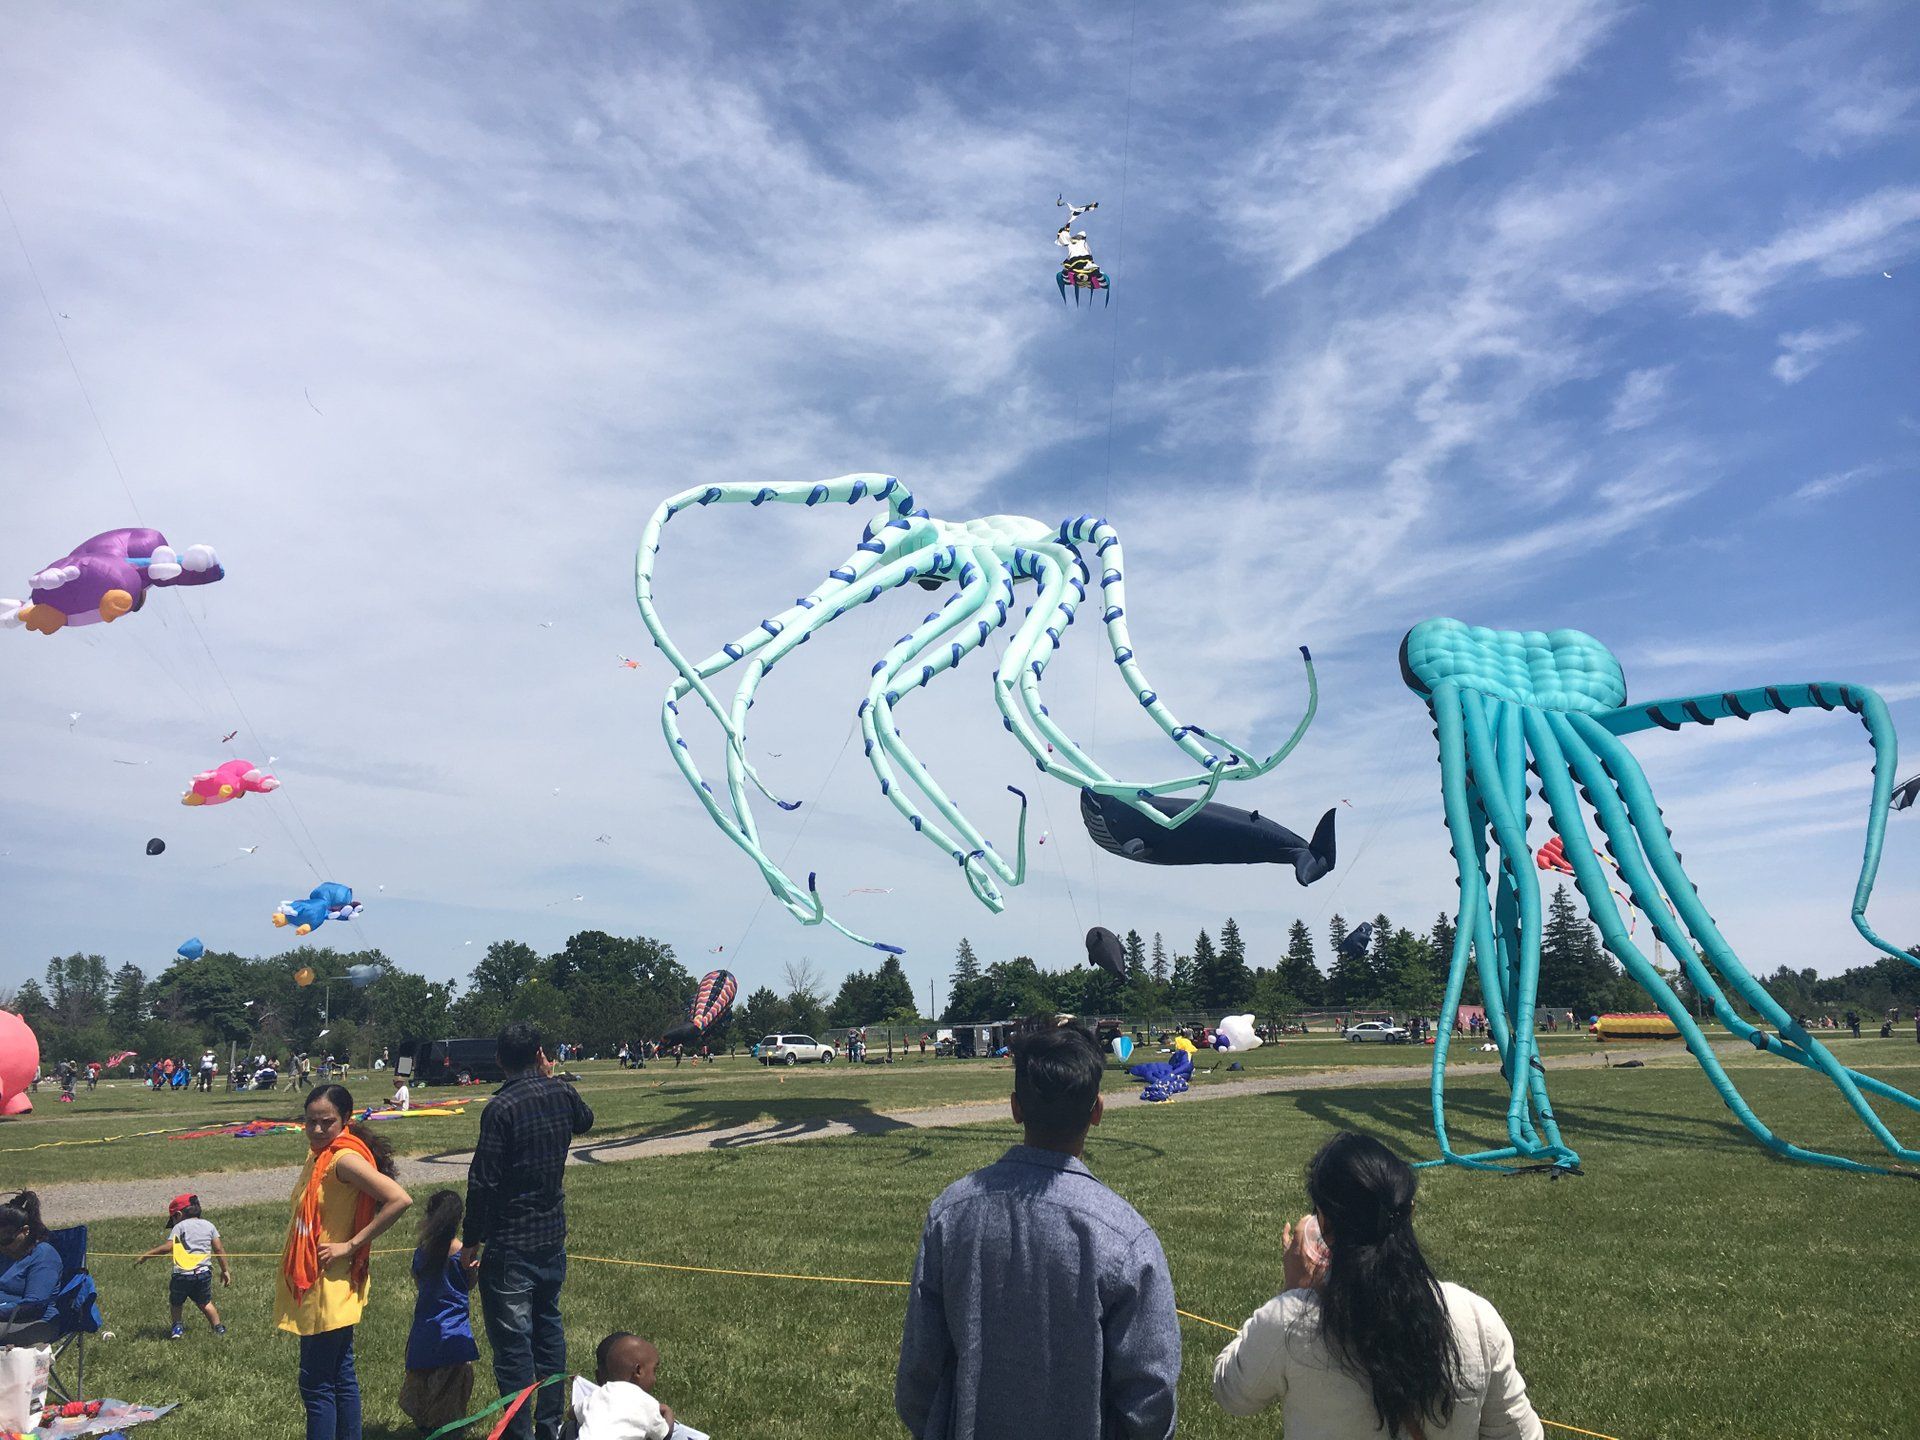 Brampton Kite Fest in Toronto 2020 - Best Time